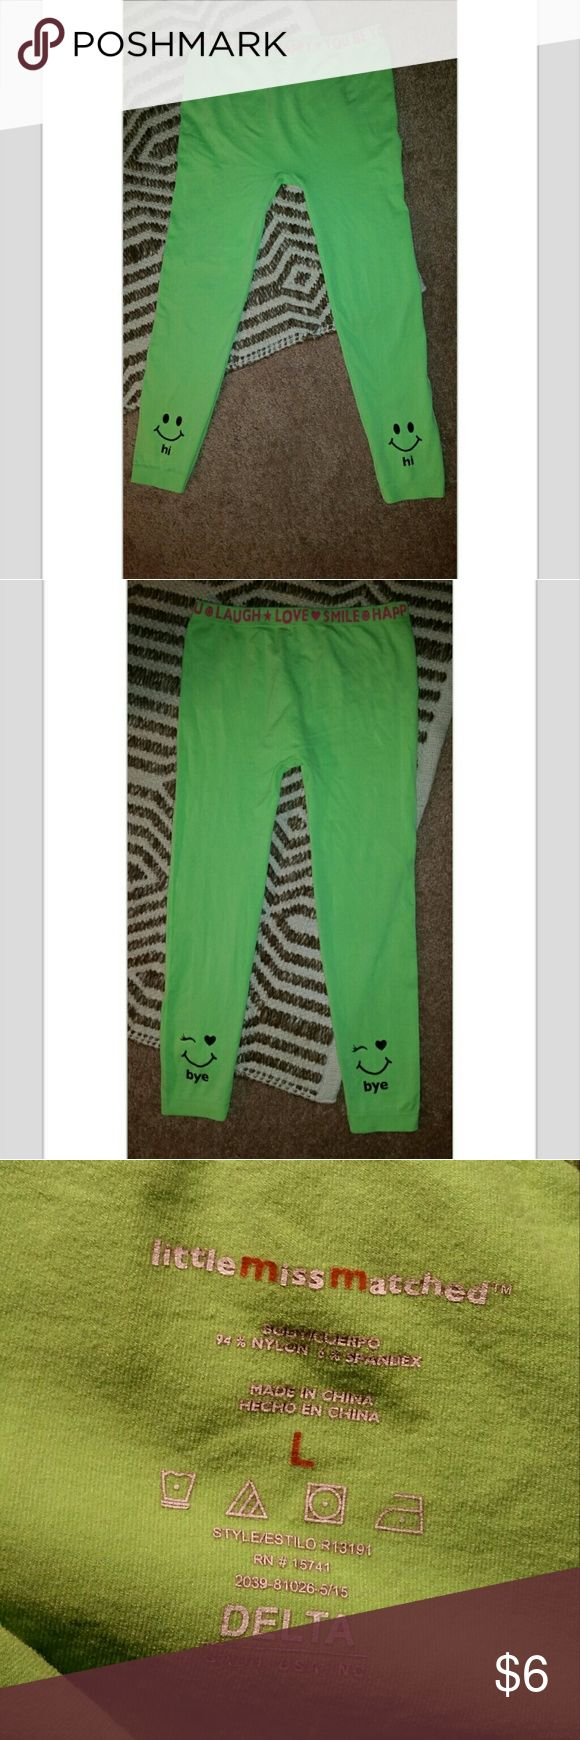 Little Miss Matched Girls Leggings Sz. L (Girls) Very cute and fun neon green leggings for girls. Nylon/Spandex material, can fit a smaller junior size!  Size L Girls little miss matched Bottoms Leggings